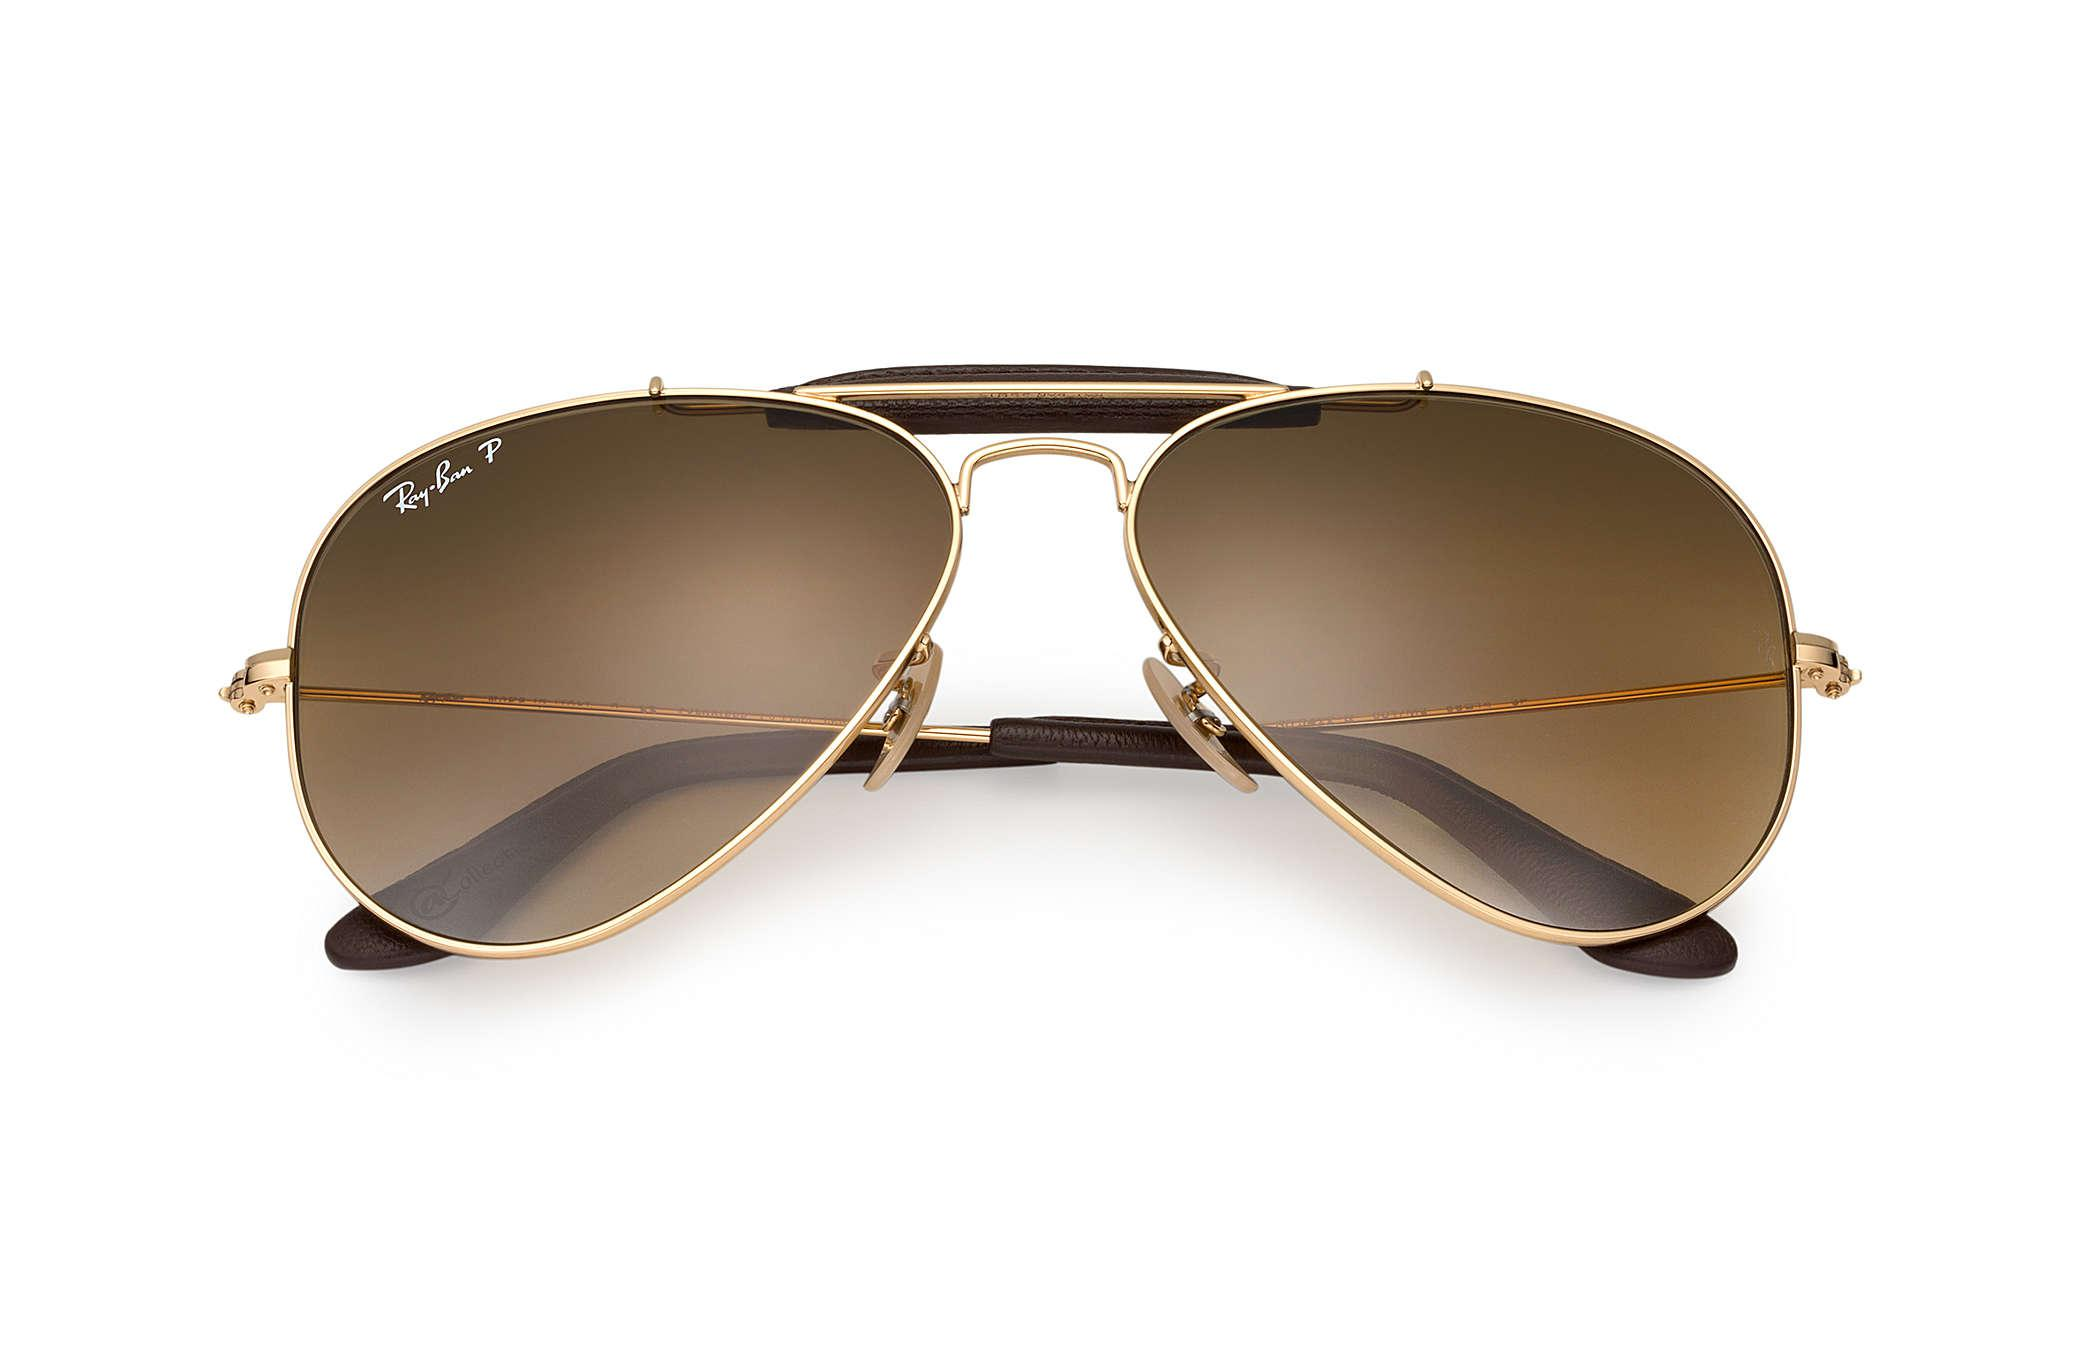 ba871b22b7 Ray Ban Outdoorsman Craft Collection « One More Soul